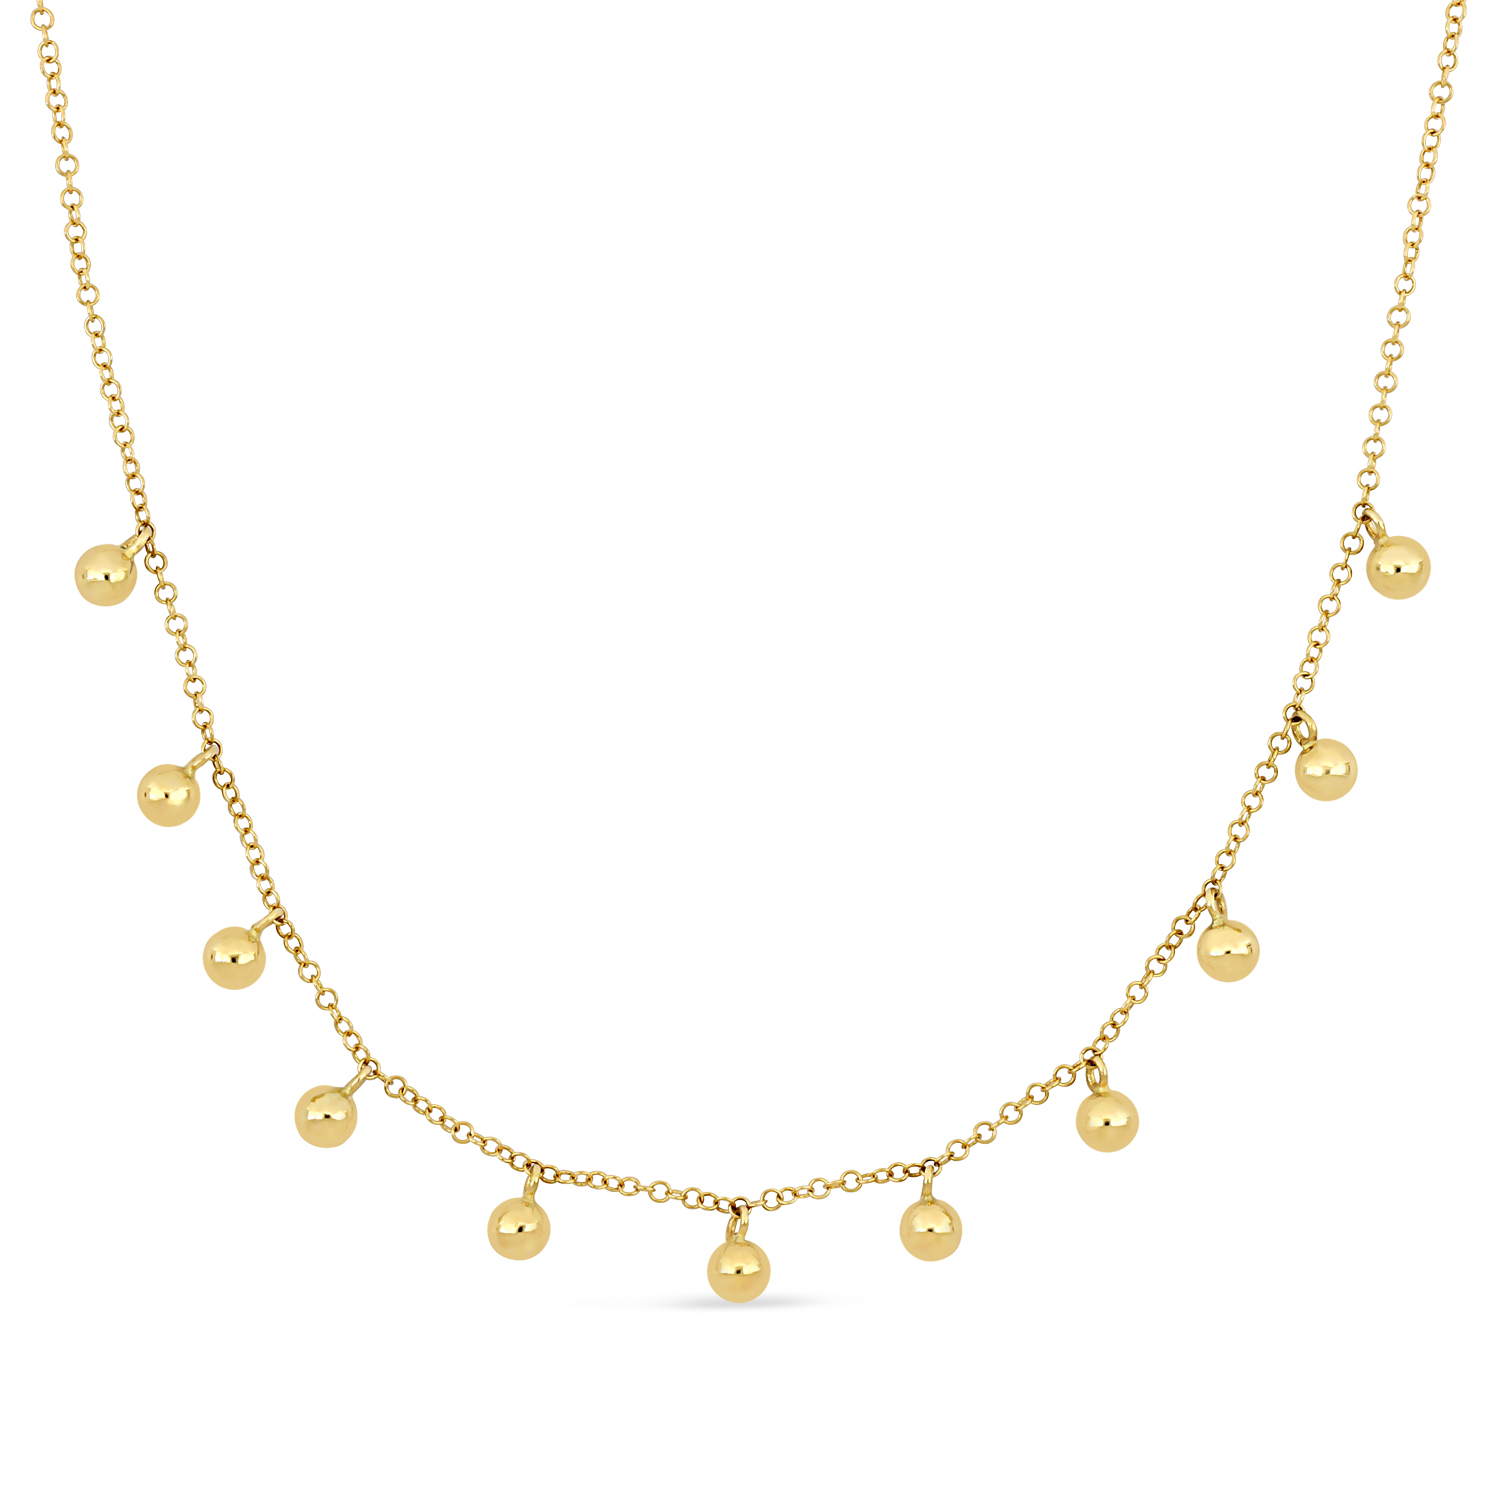 Fancy Spheres Necklace 18k Yellow Gold